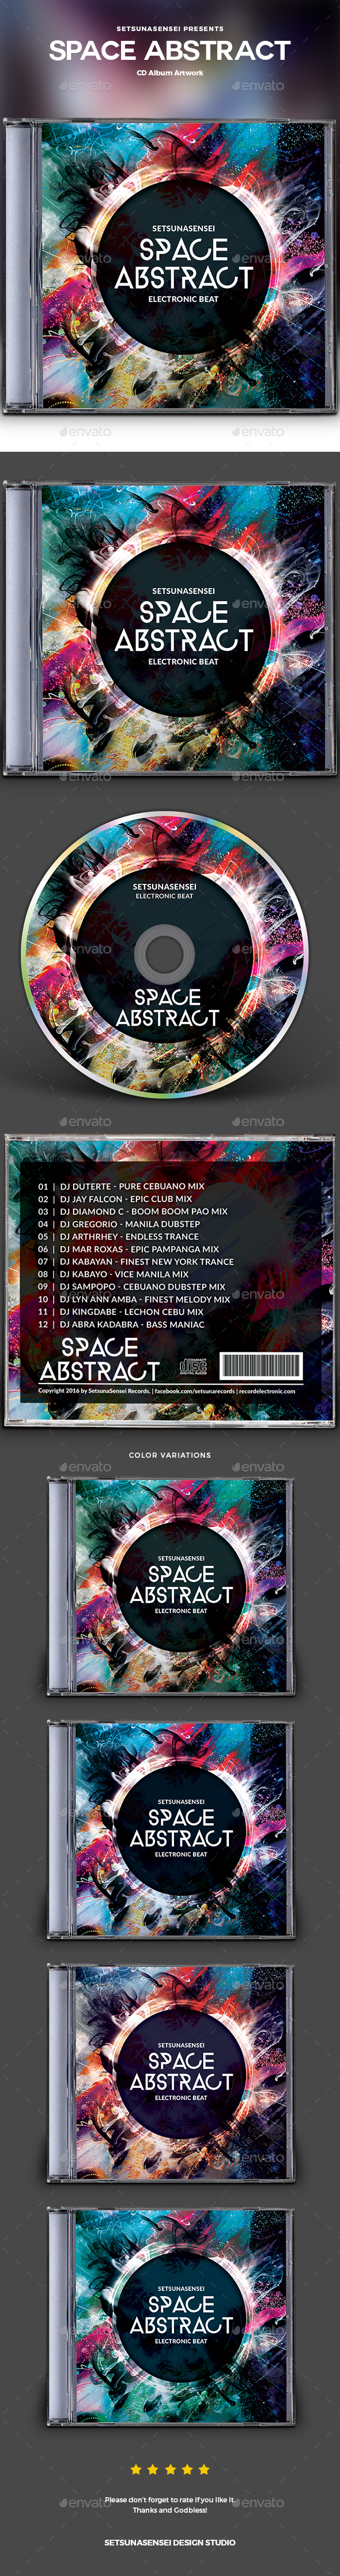 GraphicRiver Space Abstract CD Album Artwork 20897096